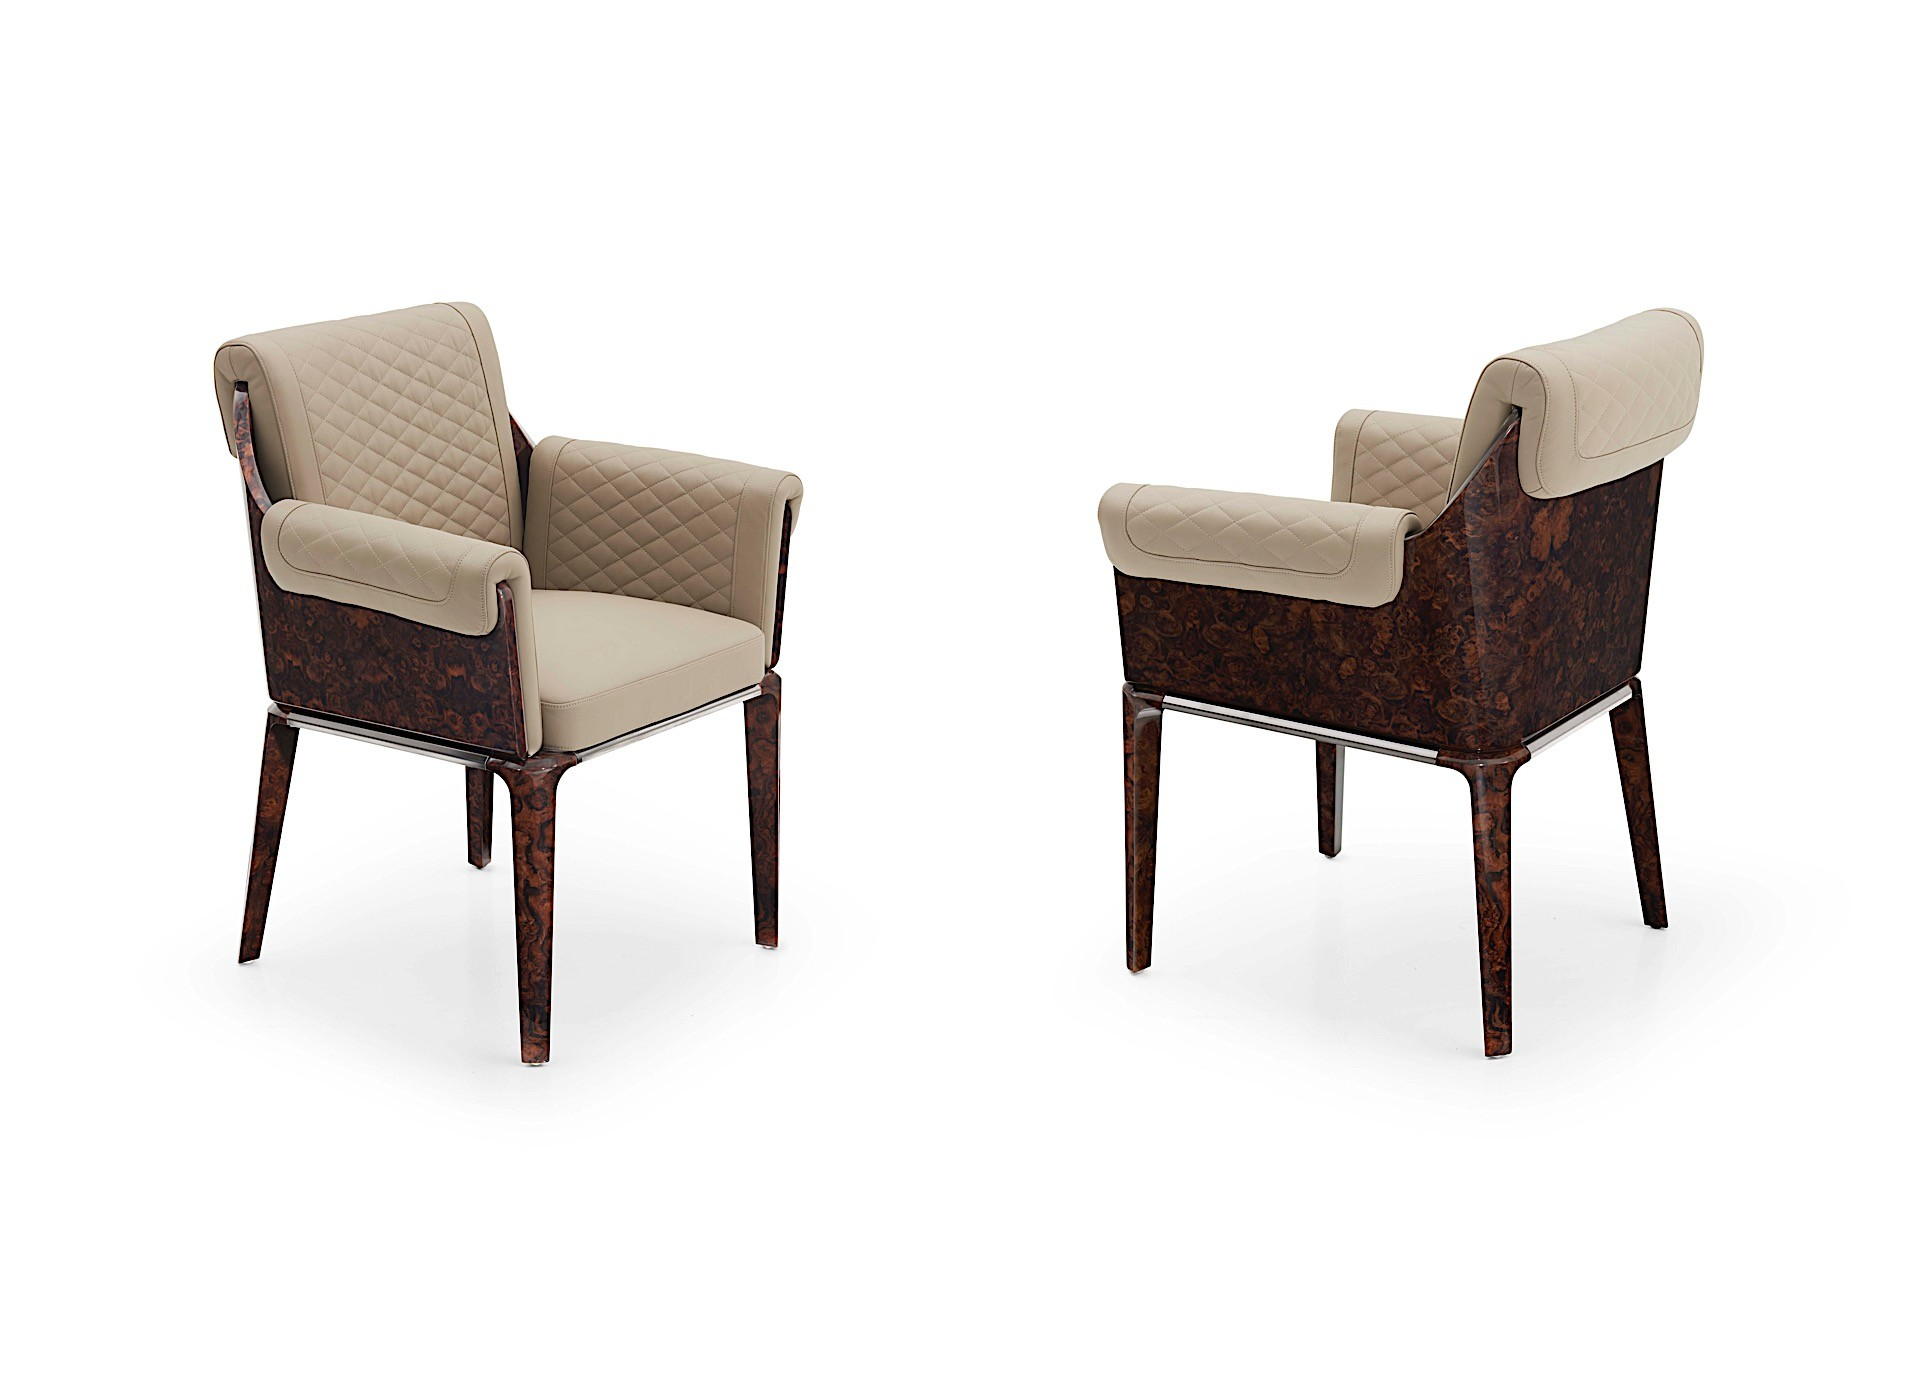 Bentley Launches Its New Furniture Collection, Prepare Your Mansion